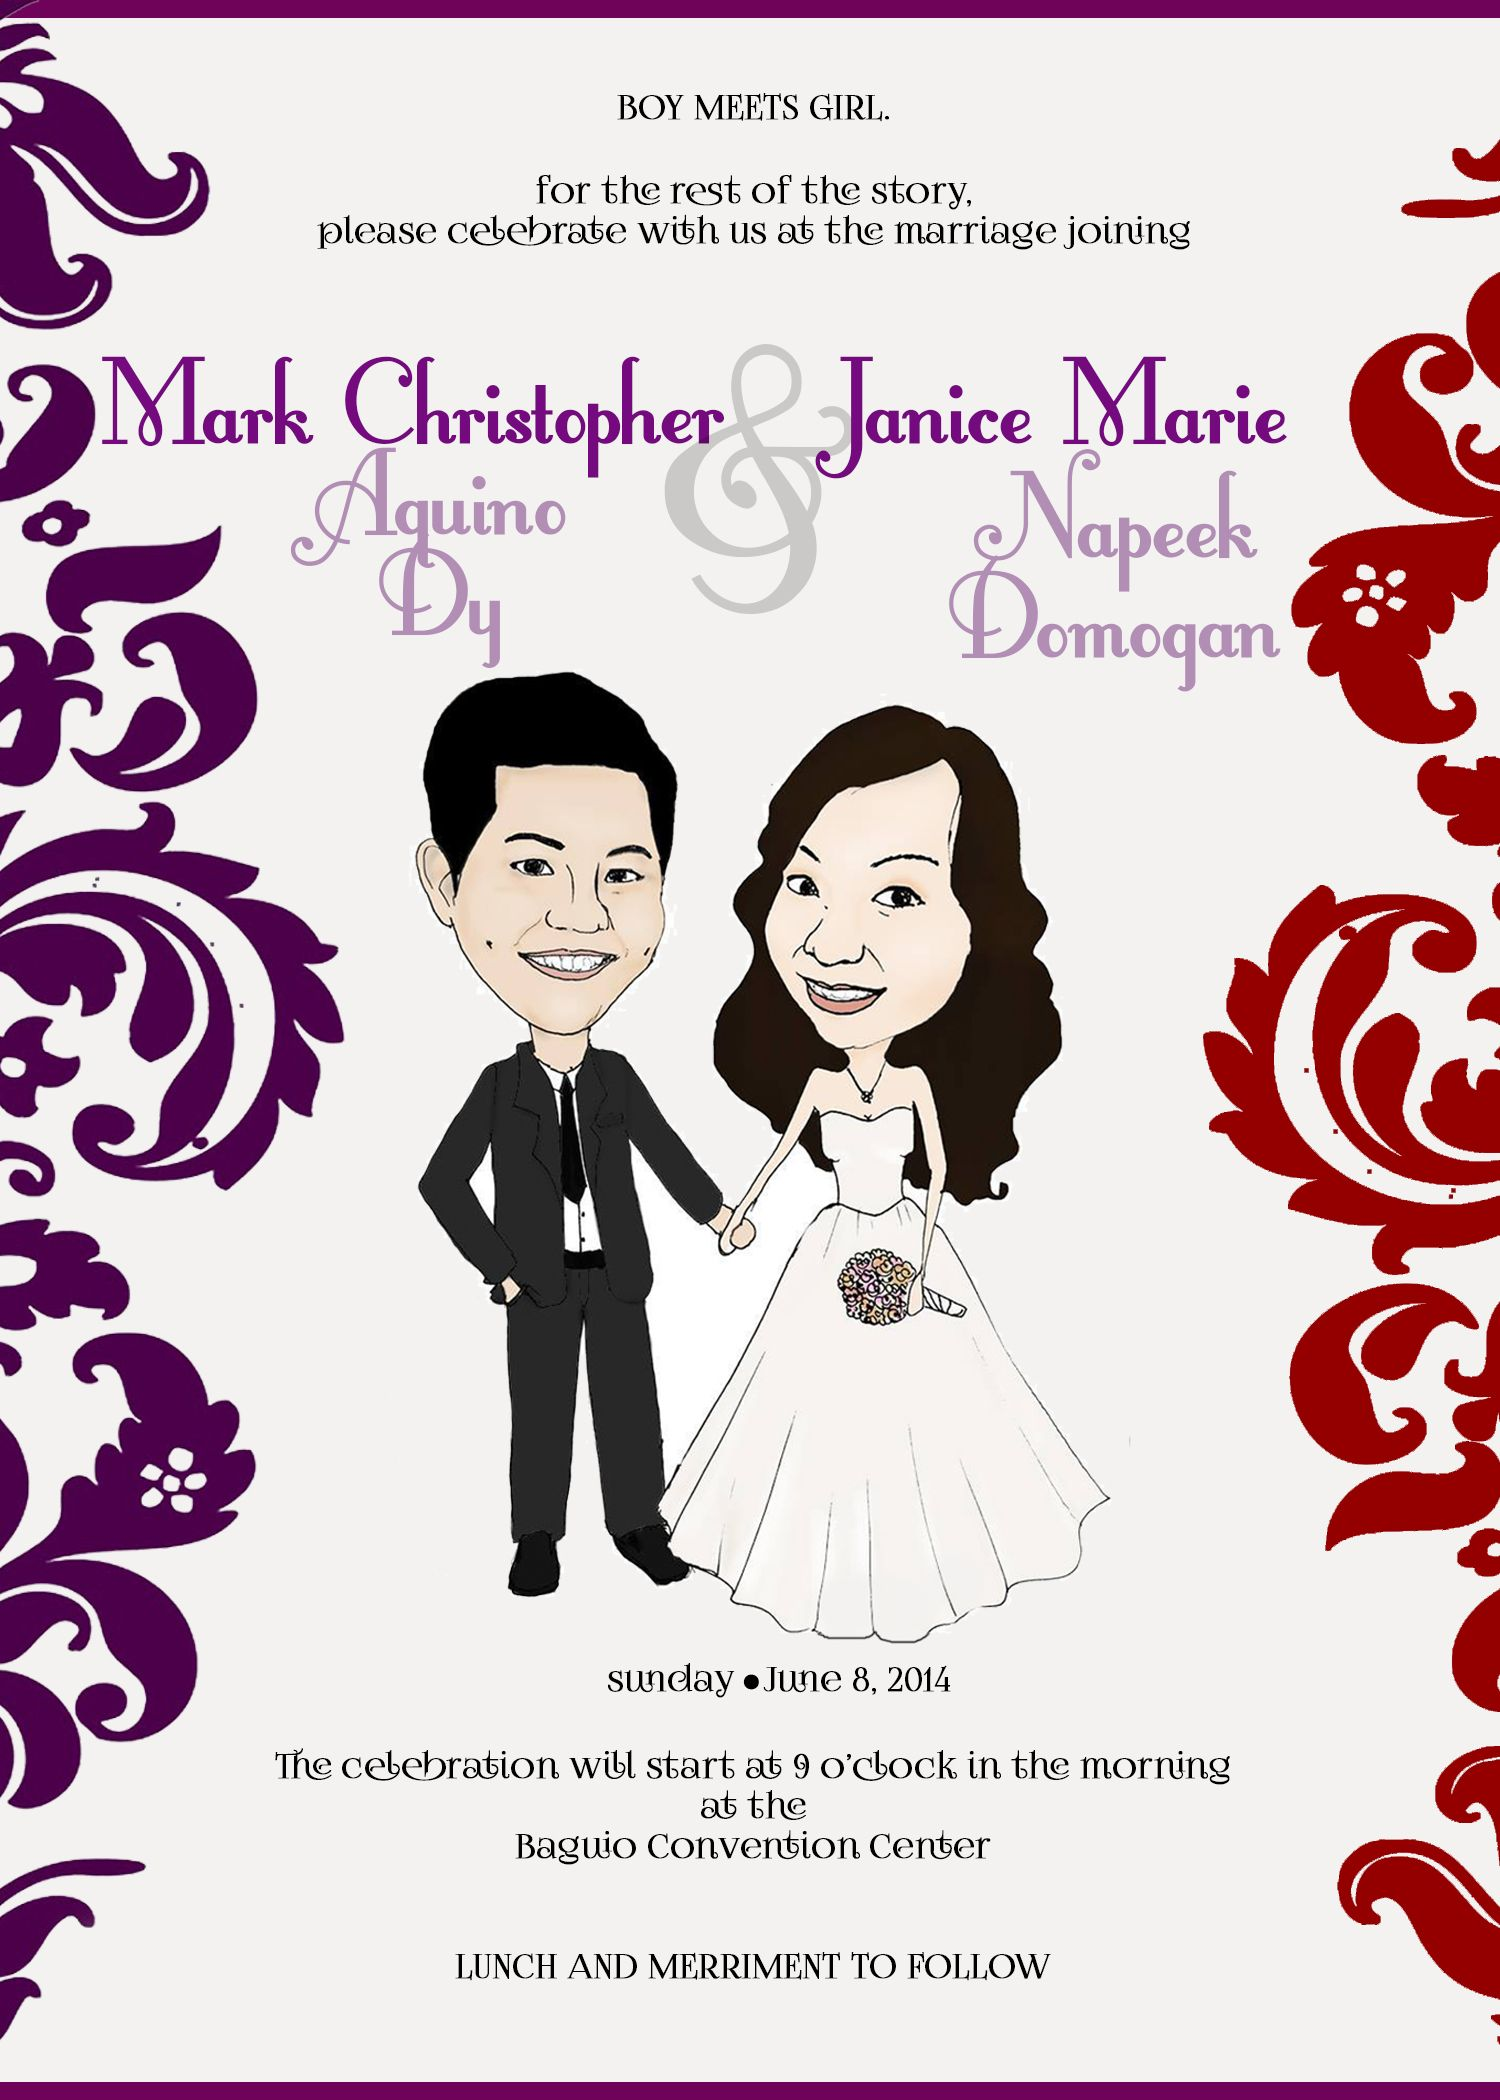 wedding caricature invitation sample | pre-nup and wedding ideas ...